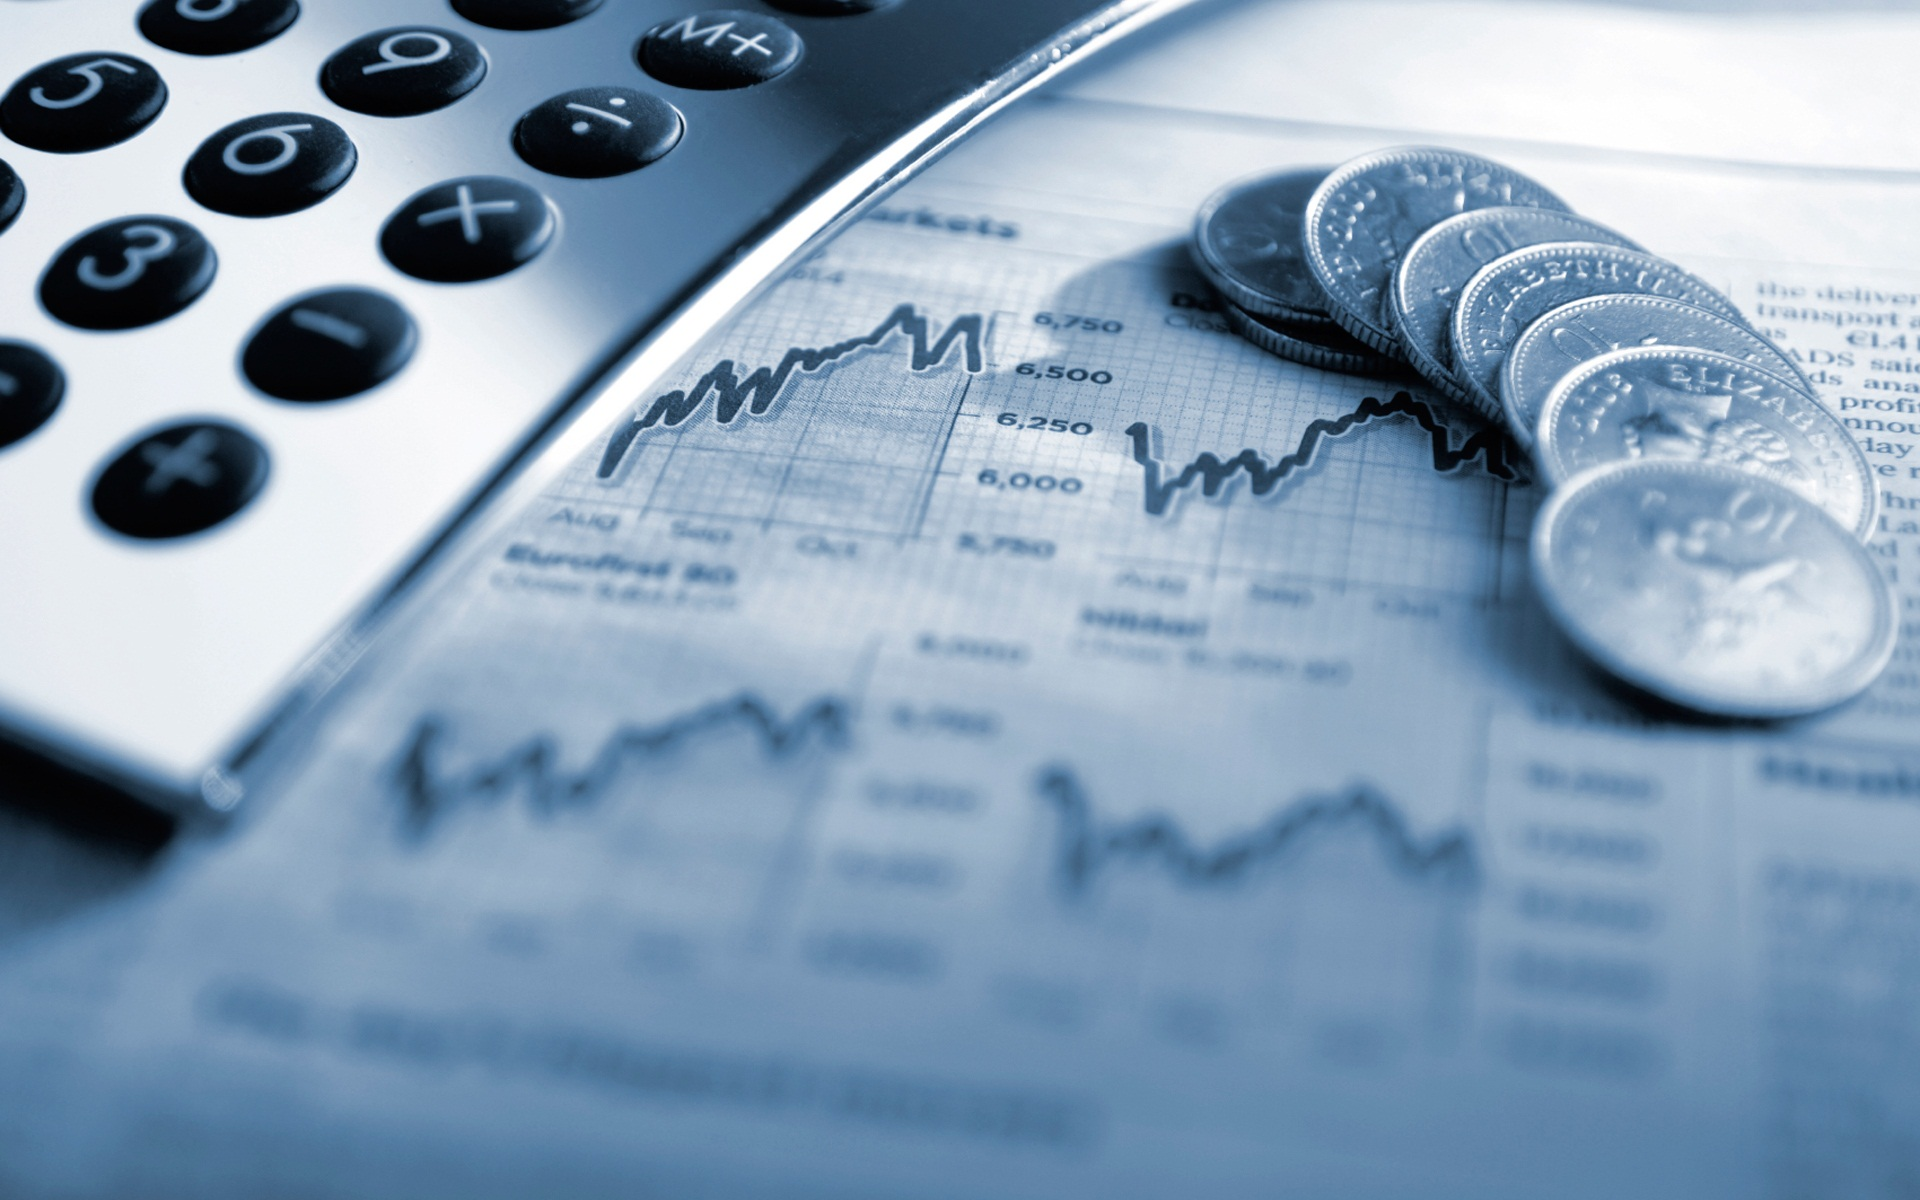 Useful Advices For Better Financial Life